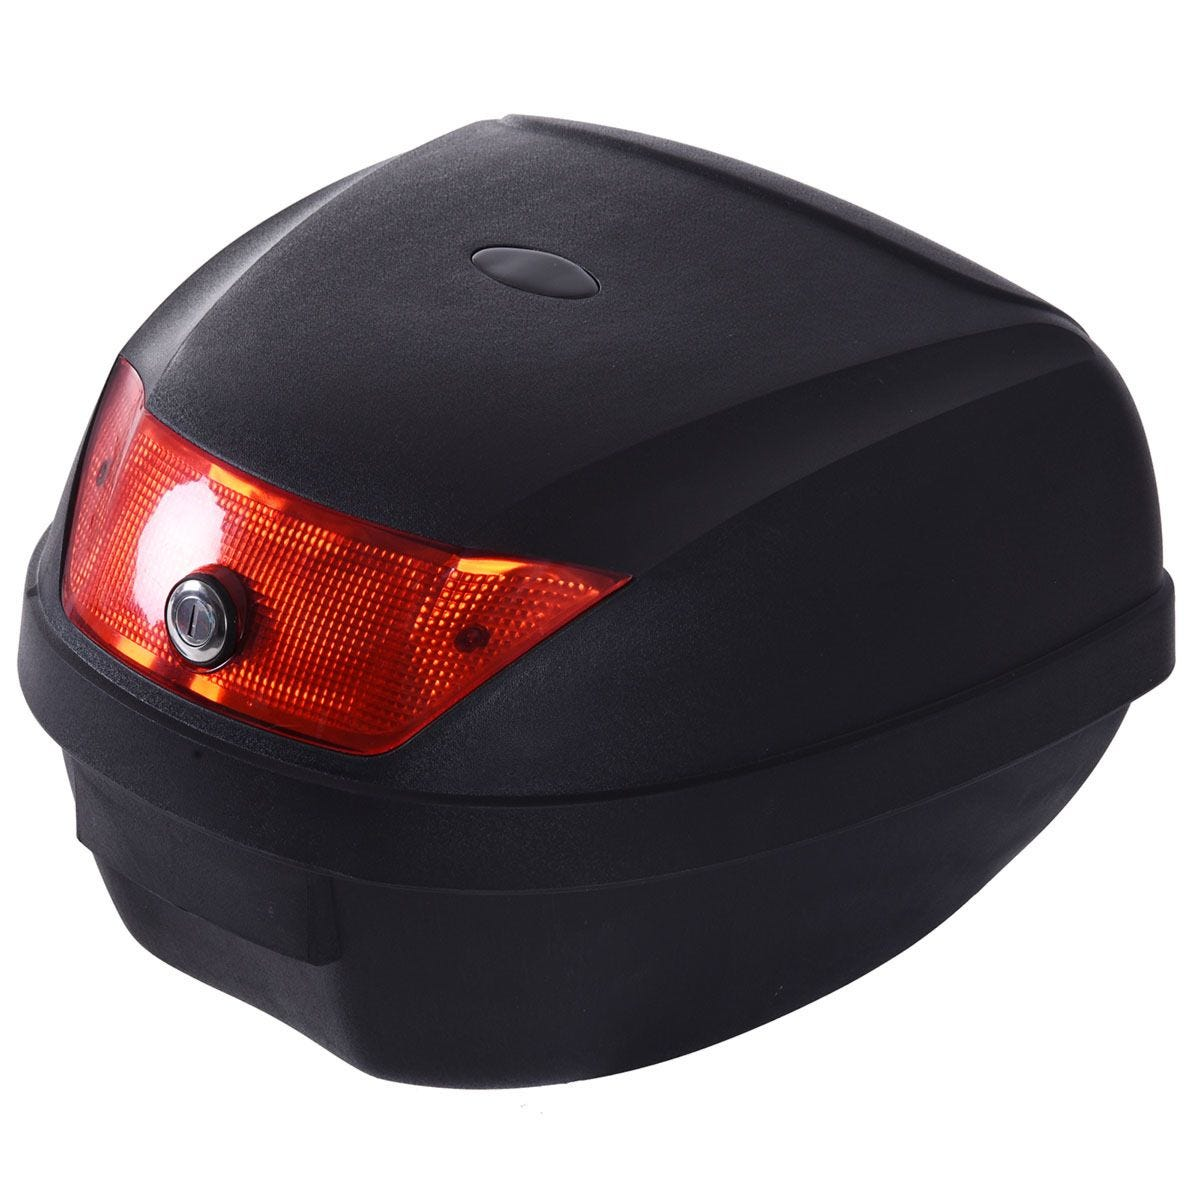 HOMCOM 28L Motorcycle Tail Box with 2 Keys - Black & Red